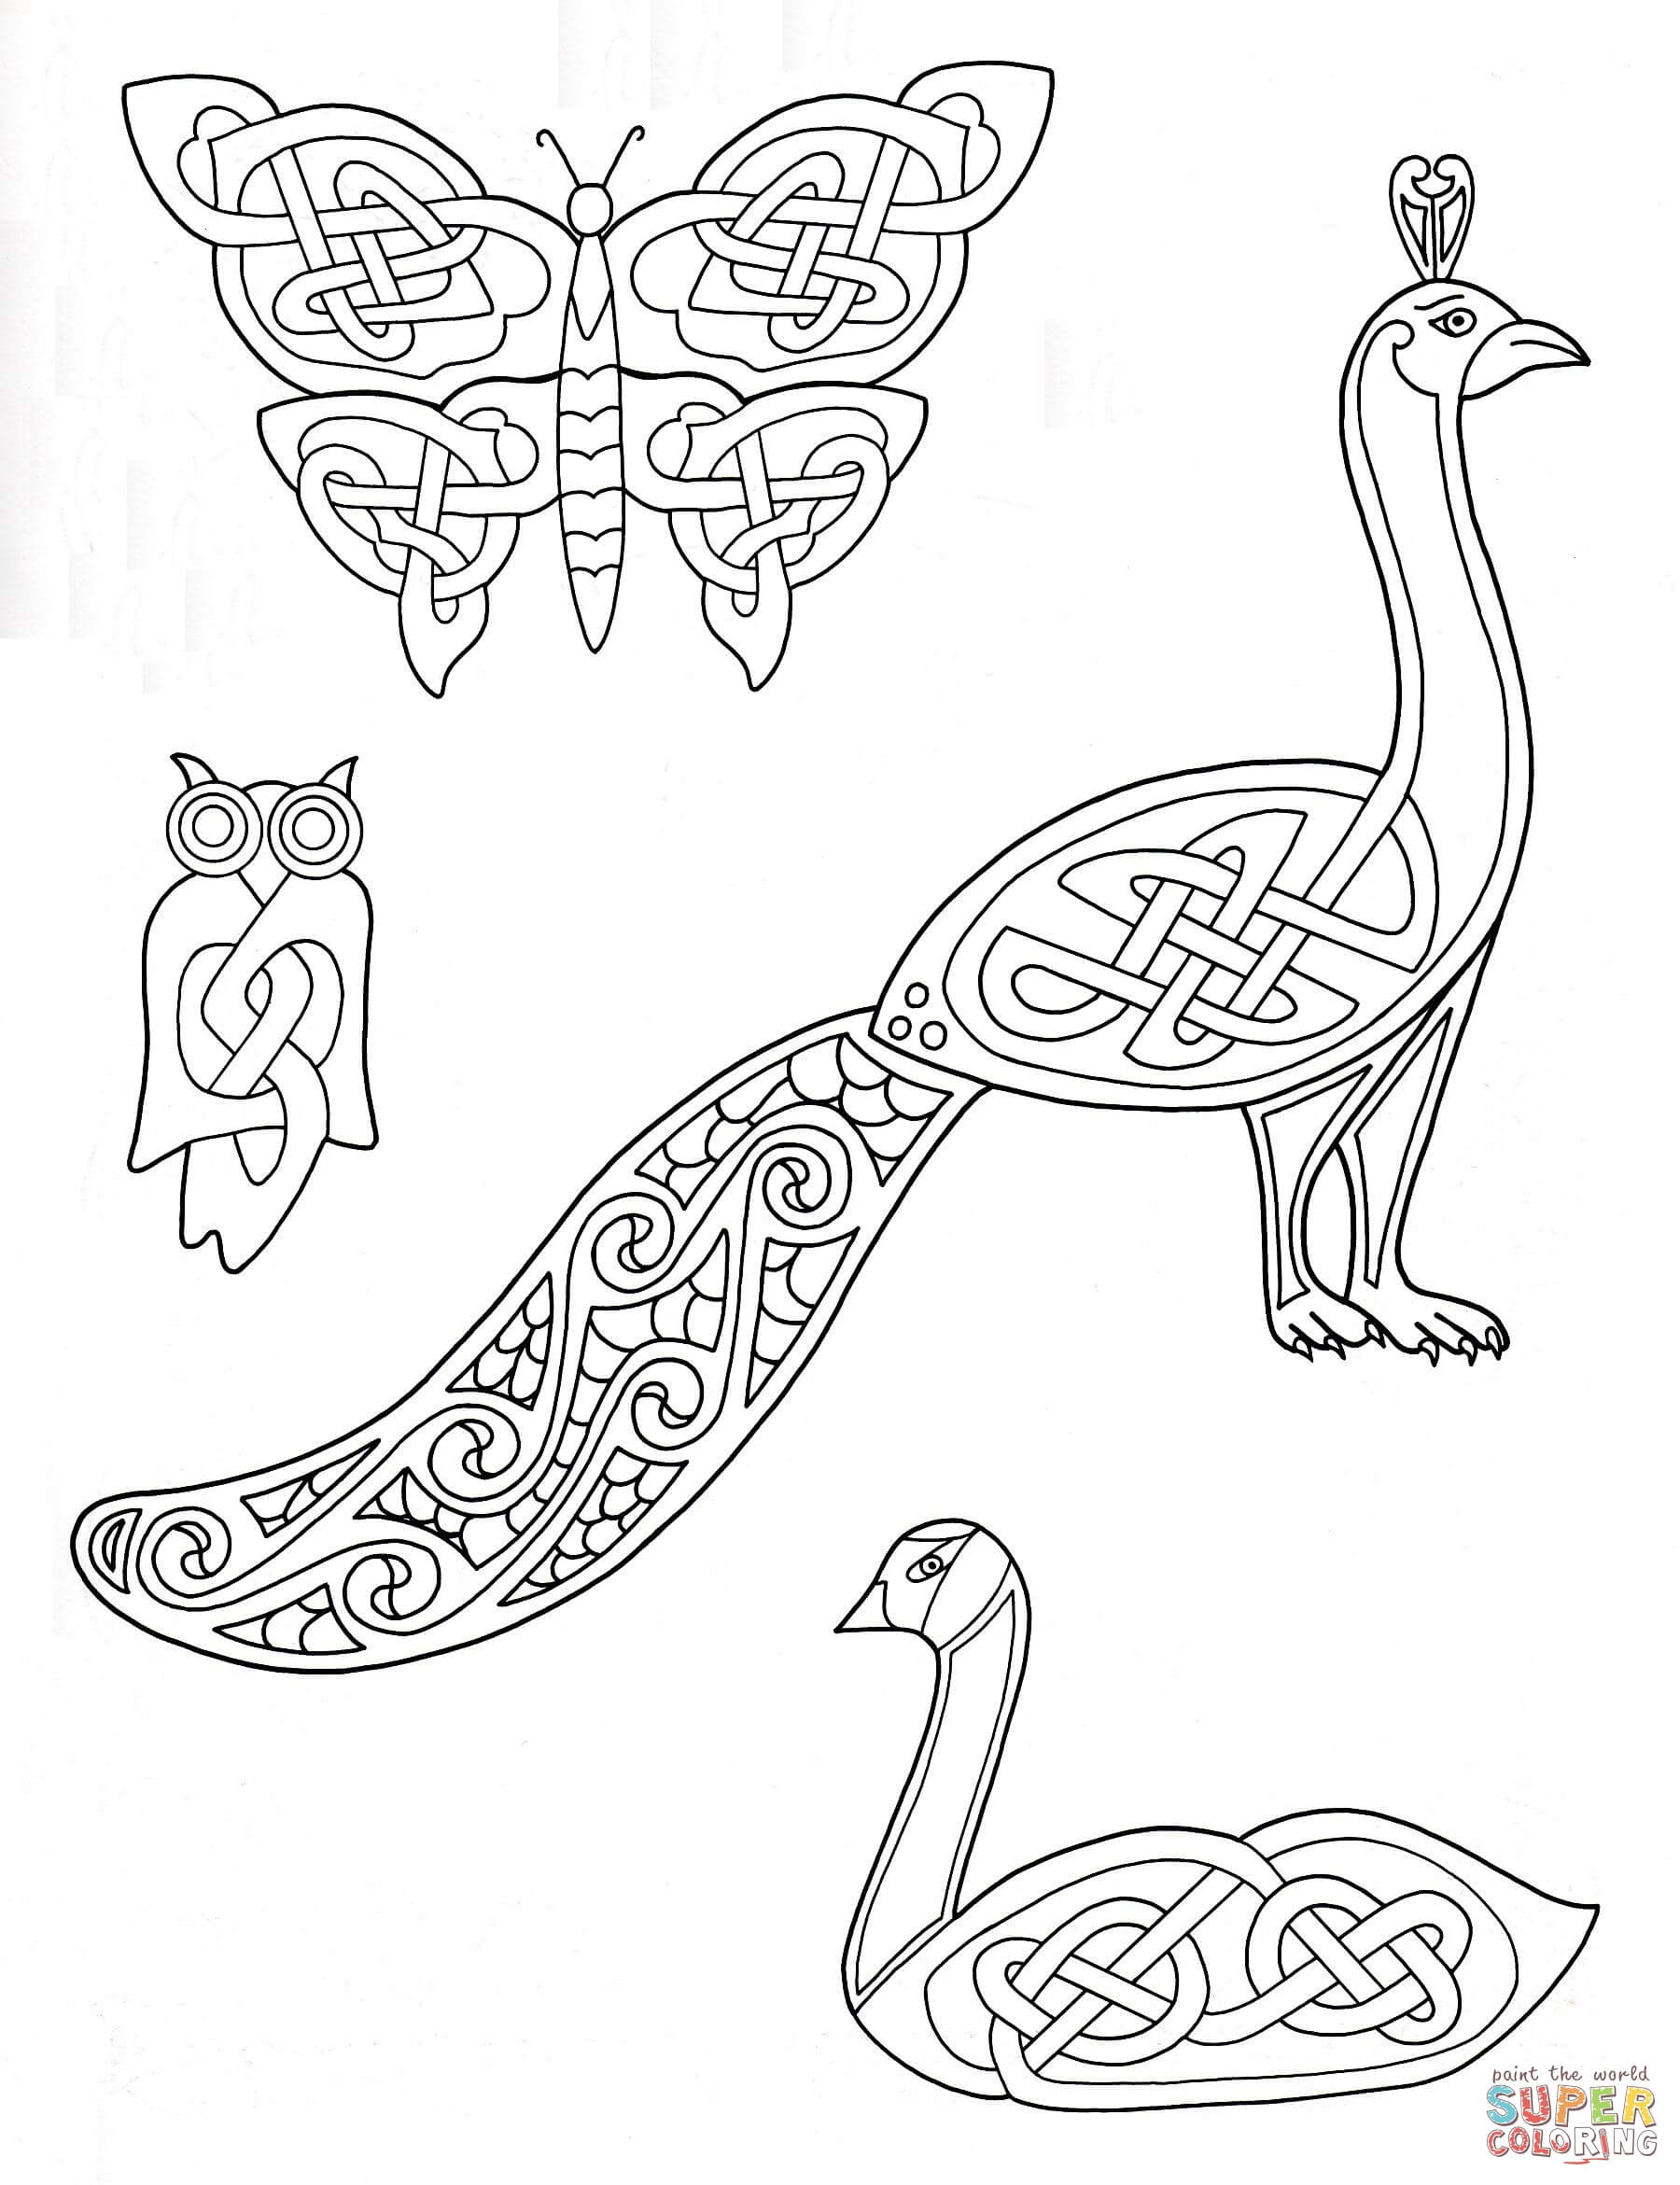 Celtic Designs Drawing at GetDrawings.com | Free for personal use ...